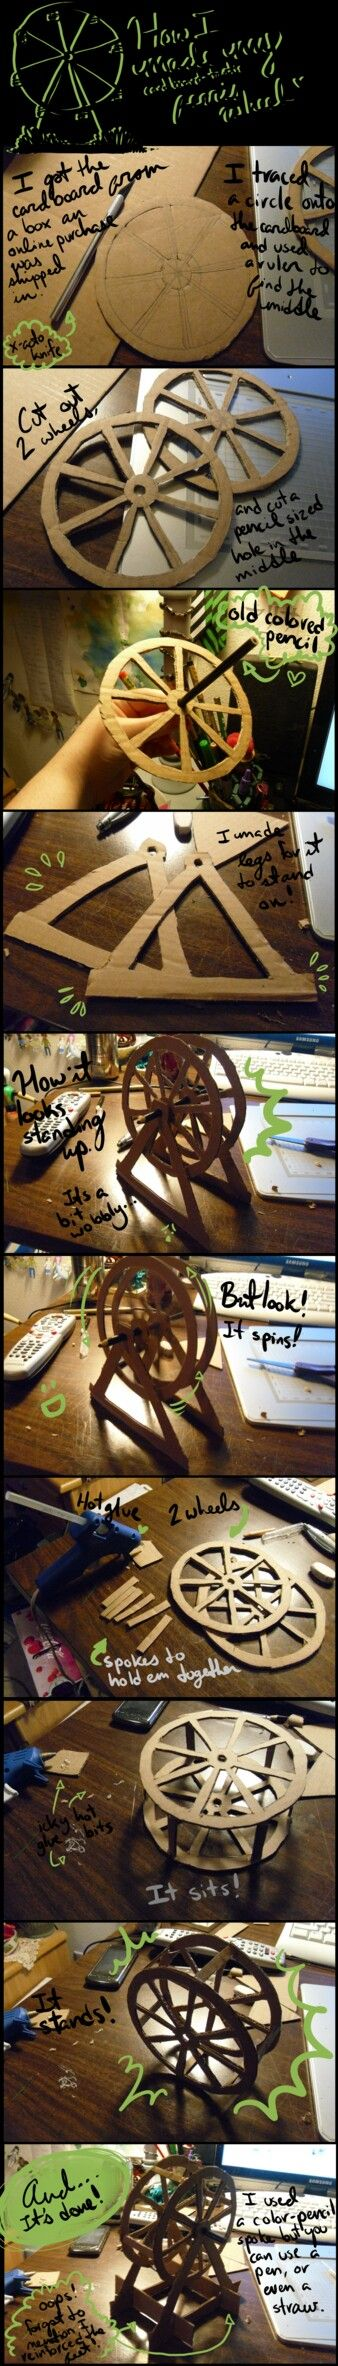 Homemade ferris wheel